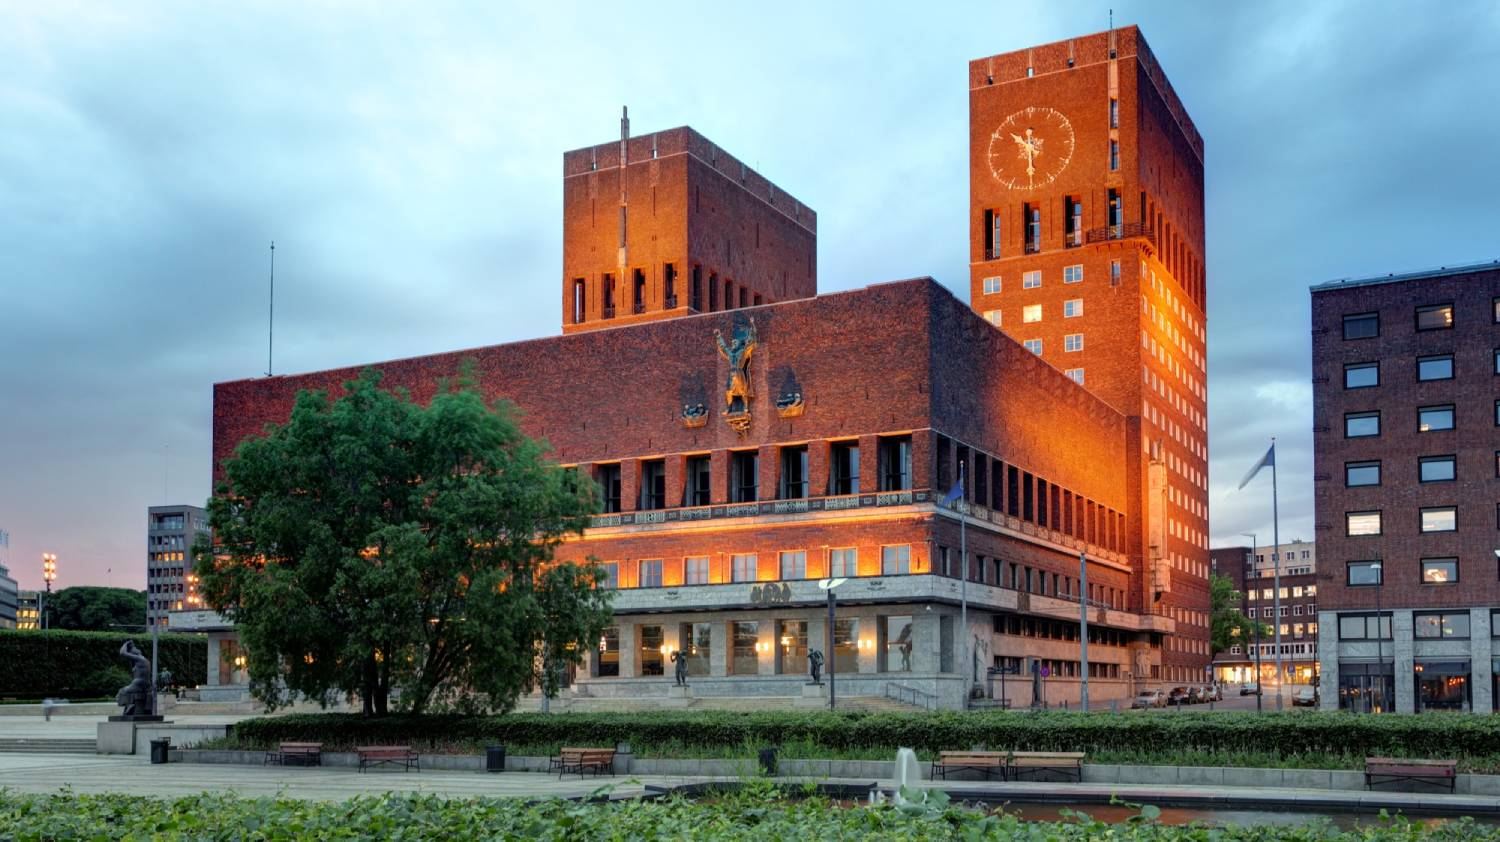 Oslo City Hall (Radhus) - Things To Do In Oslo